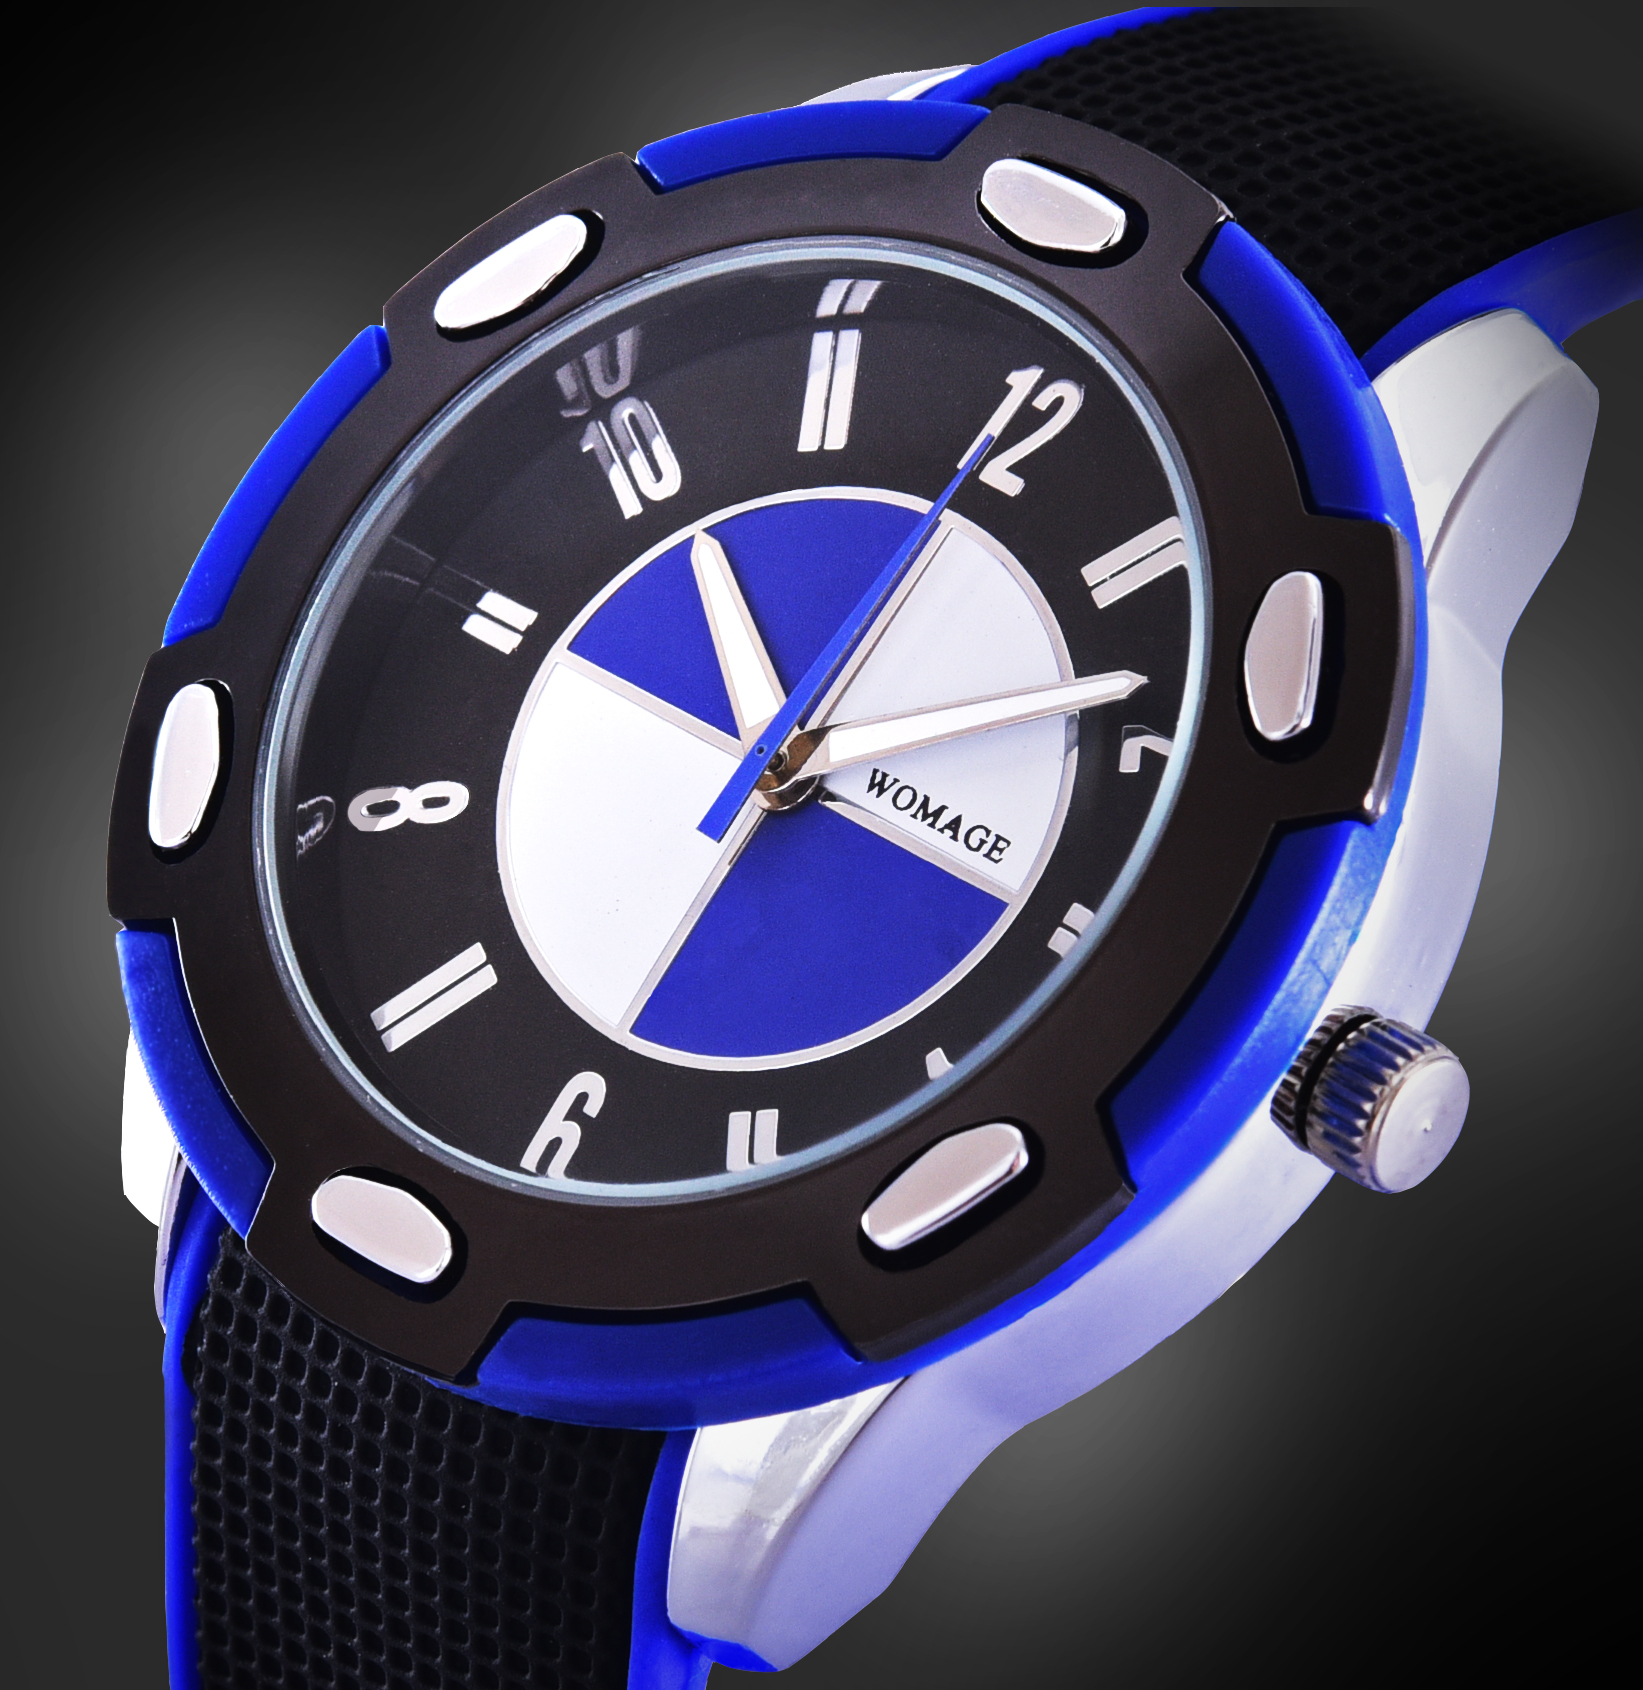 2016 New Womage Men silicone watch quartz racing hot sale fashion male big dial stylish sports